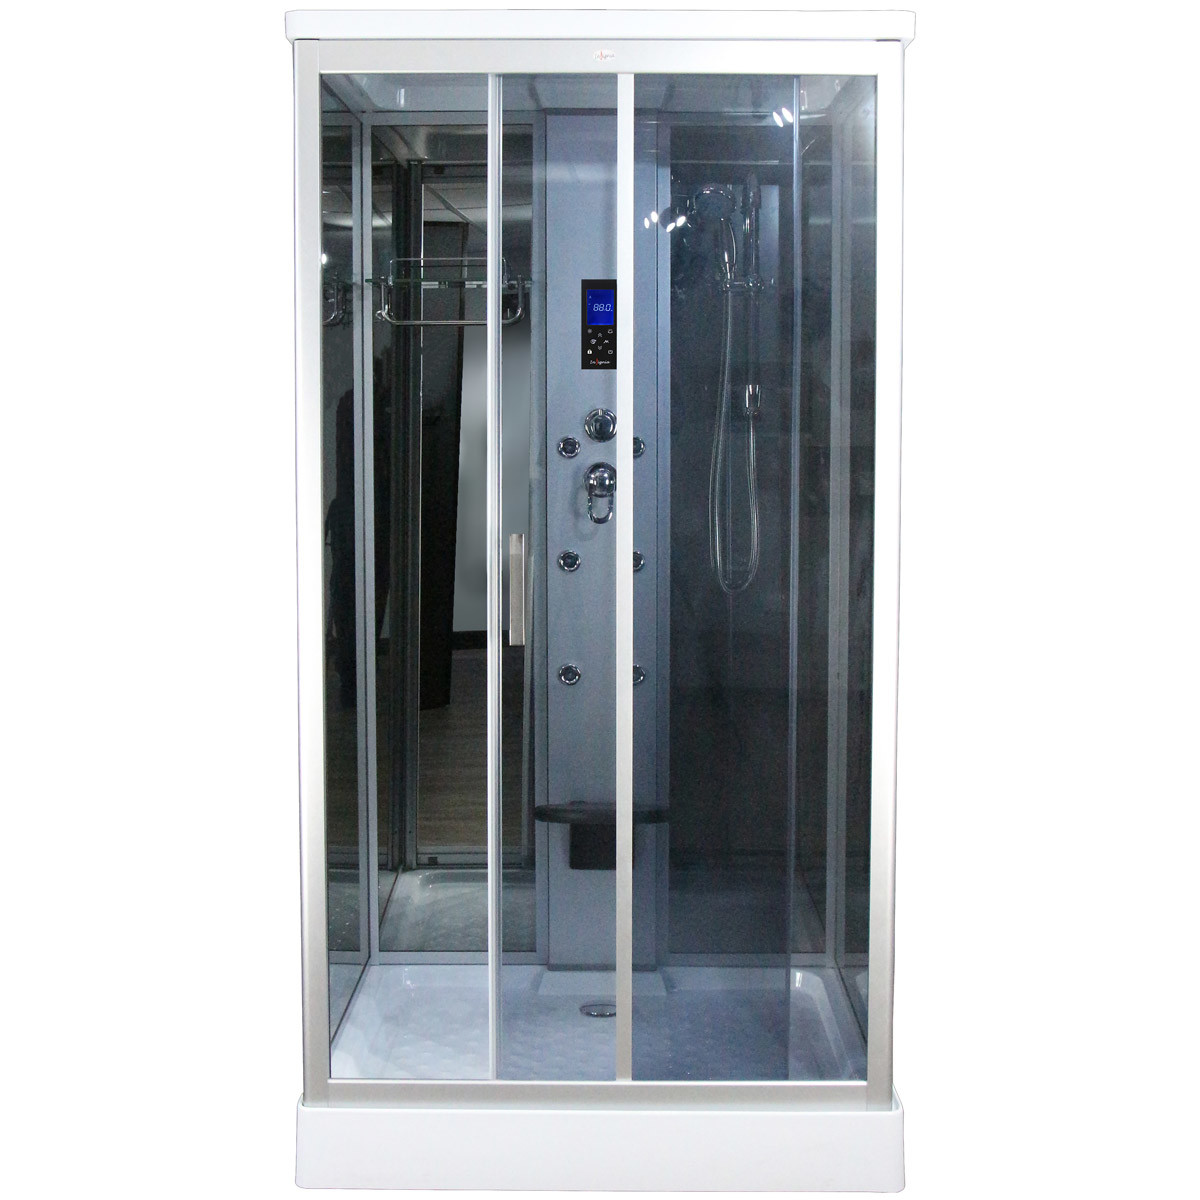 Claasic Steam Shower Whirlpool Bath Combination Square